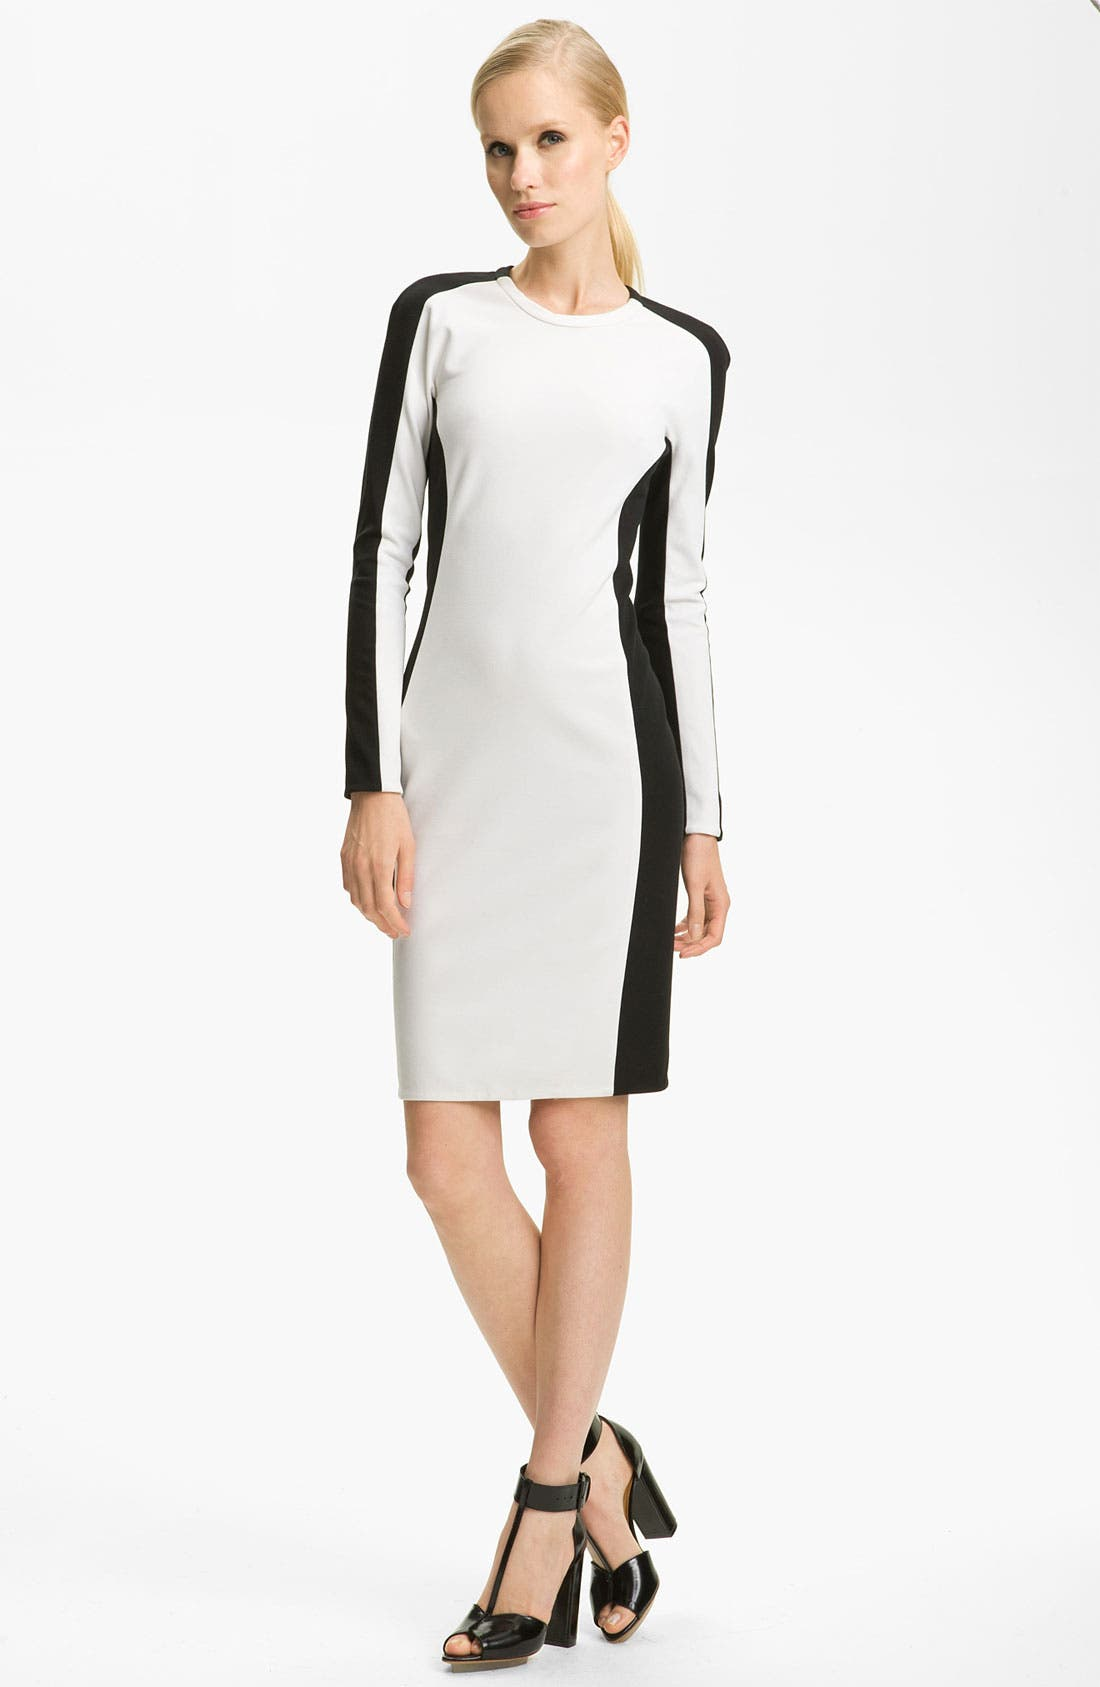 Main Image - 3.1 Phillip Lim Shadow Stripe Ponte Knit Dress